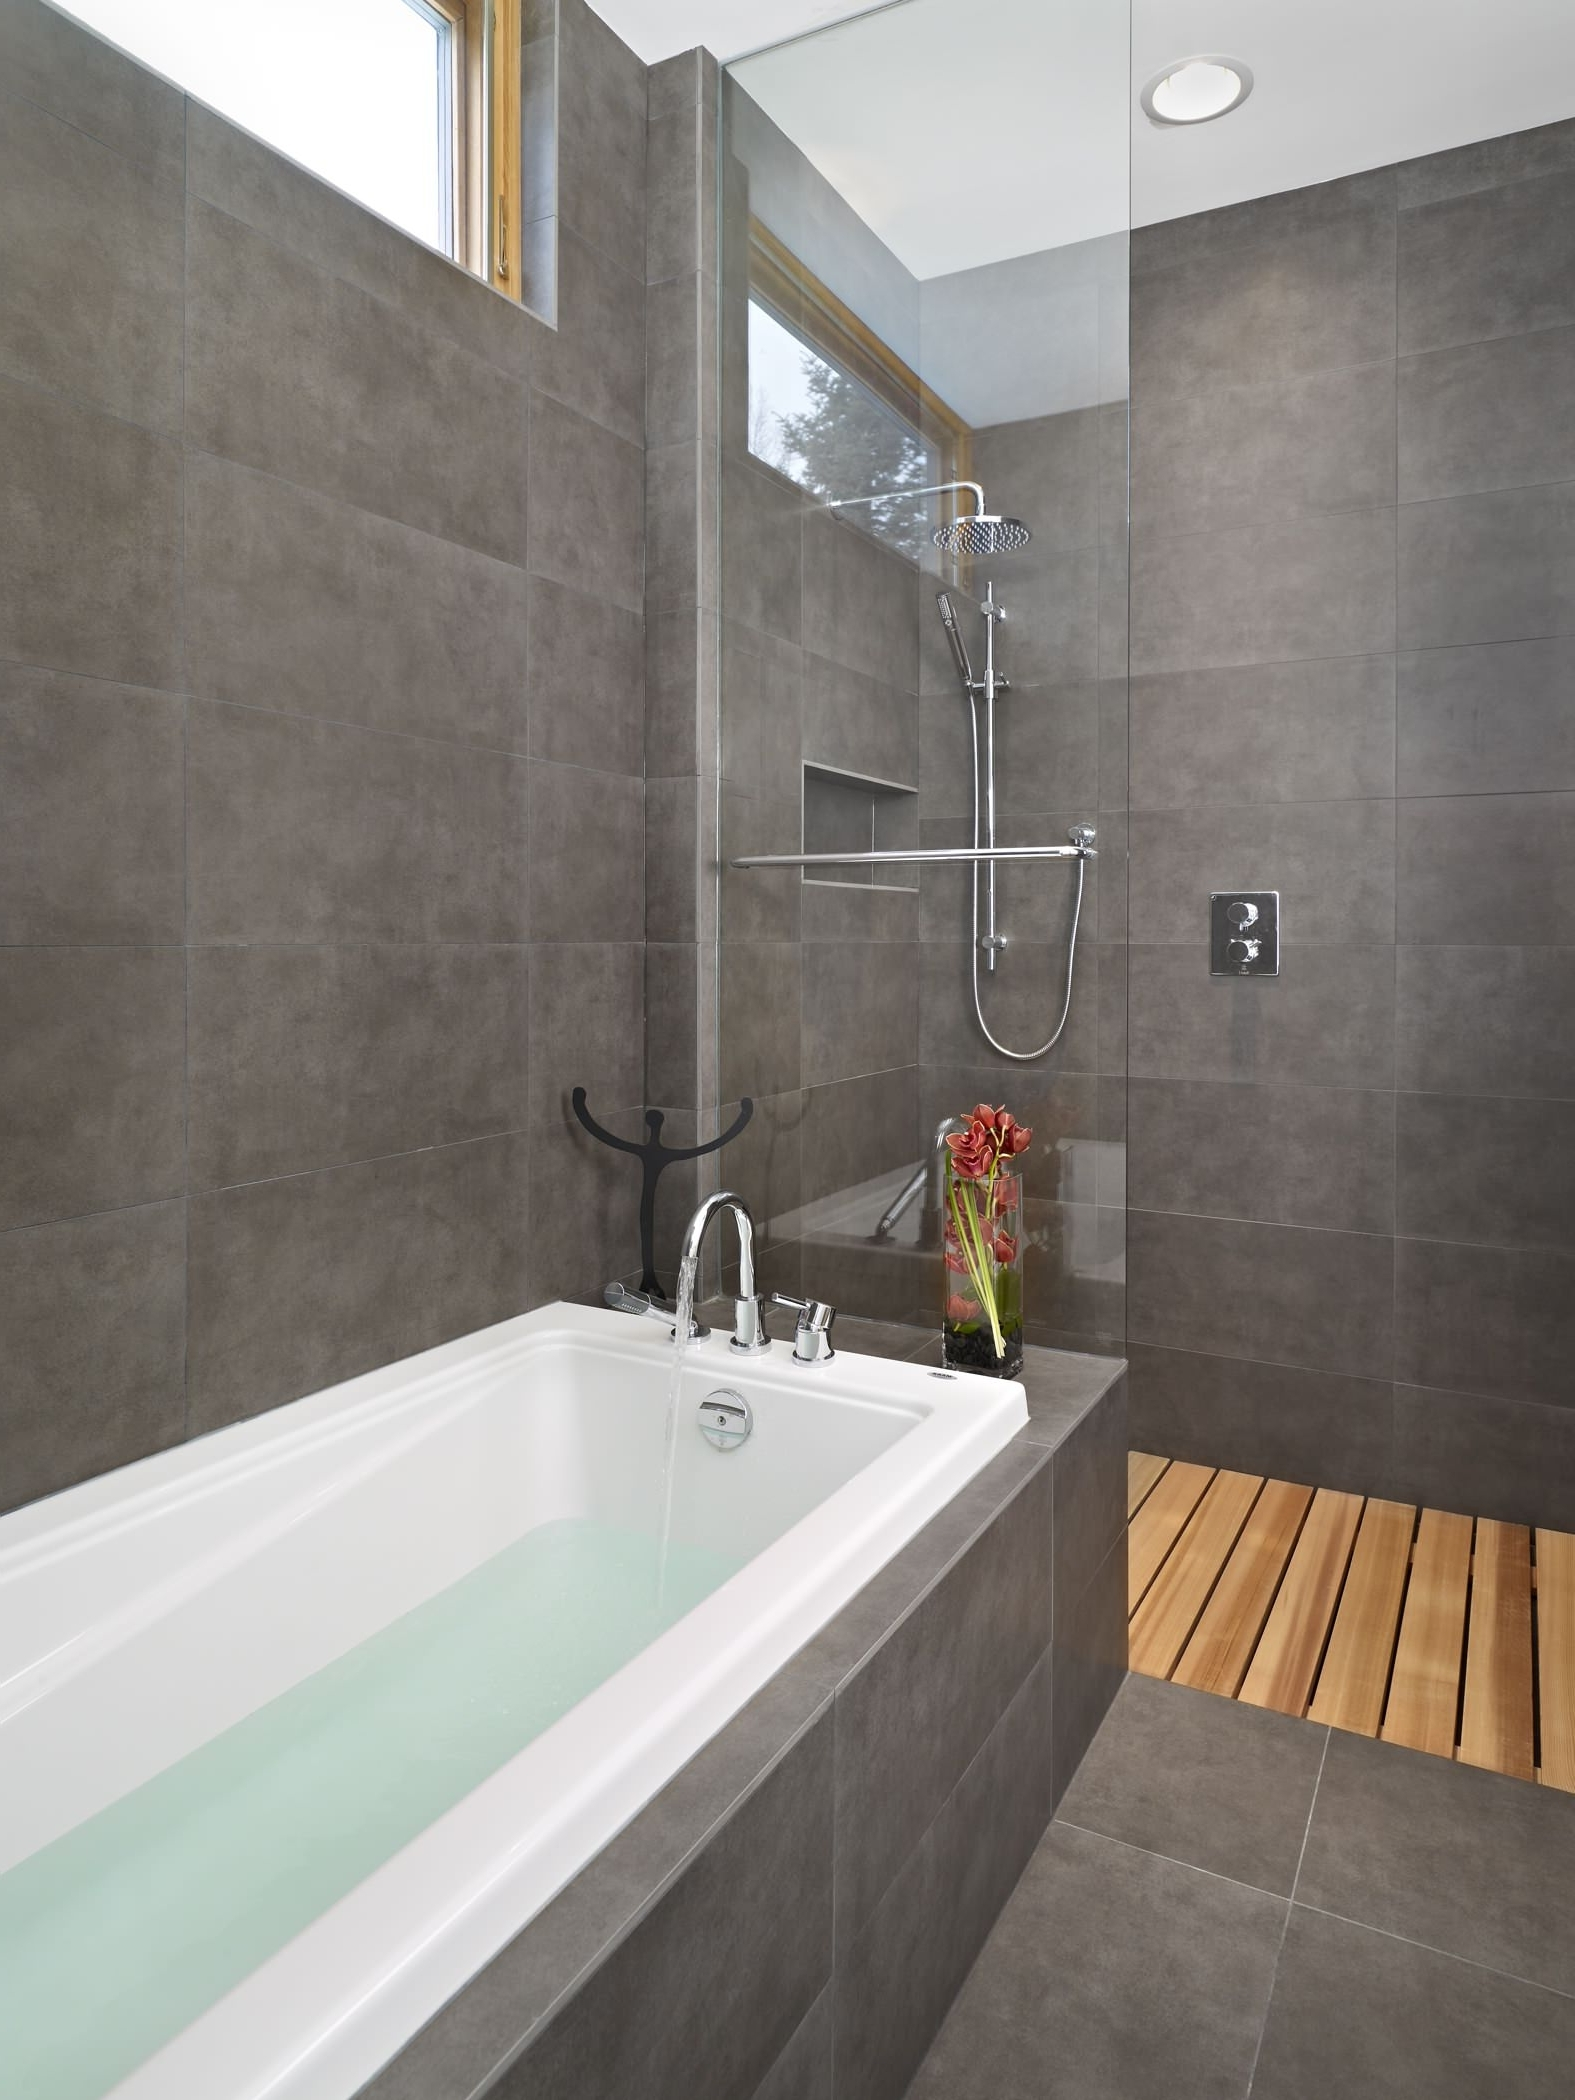 2X2 Modern Bathroom Ideas | Houzz 2X2 Bathroom Design